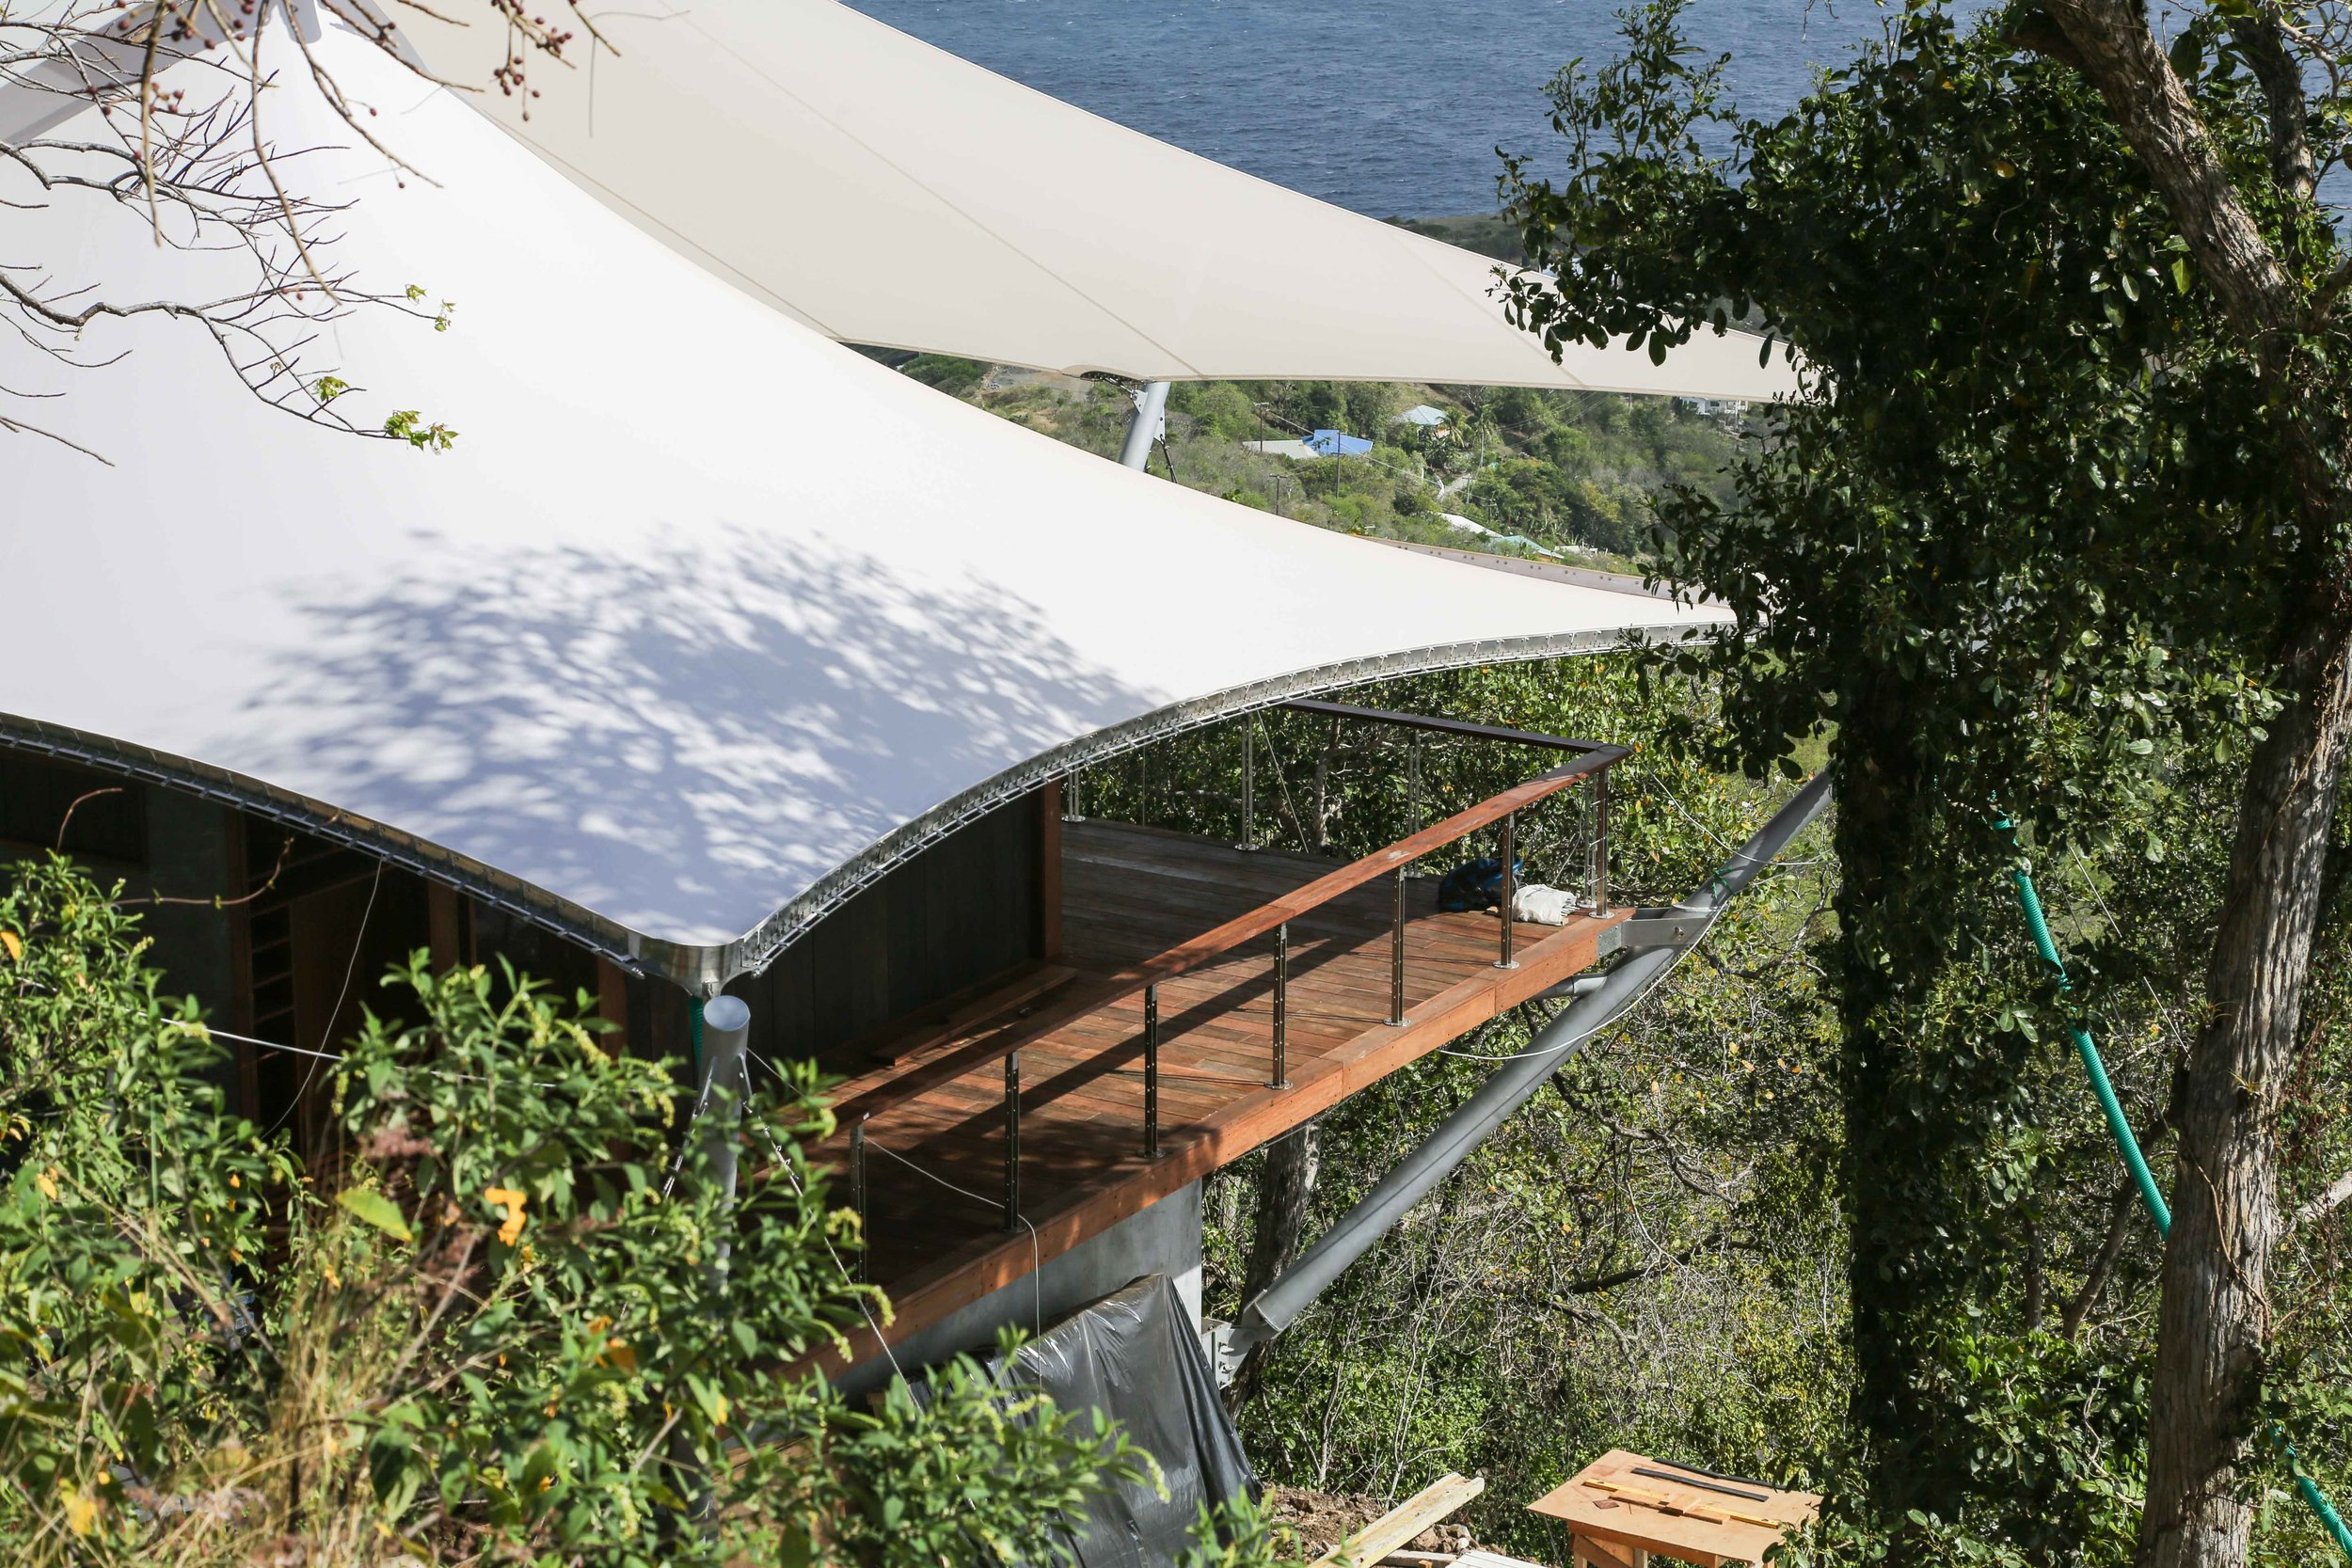 S.E.A.-Studio-Environmental-Architecture-David-Hertz-FAIA-Sail-House-Cloud9-Bequia-Saint-Vincent-Grenadines-Caribbean-Island-sustainable-regenerative-restorative-green-design-hospitality-tropical-resort-hotel-biomimetic-tensile-structure-progress-2.jpg